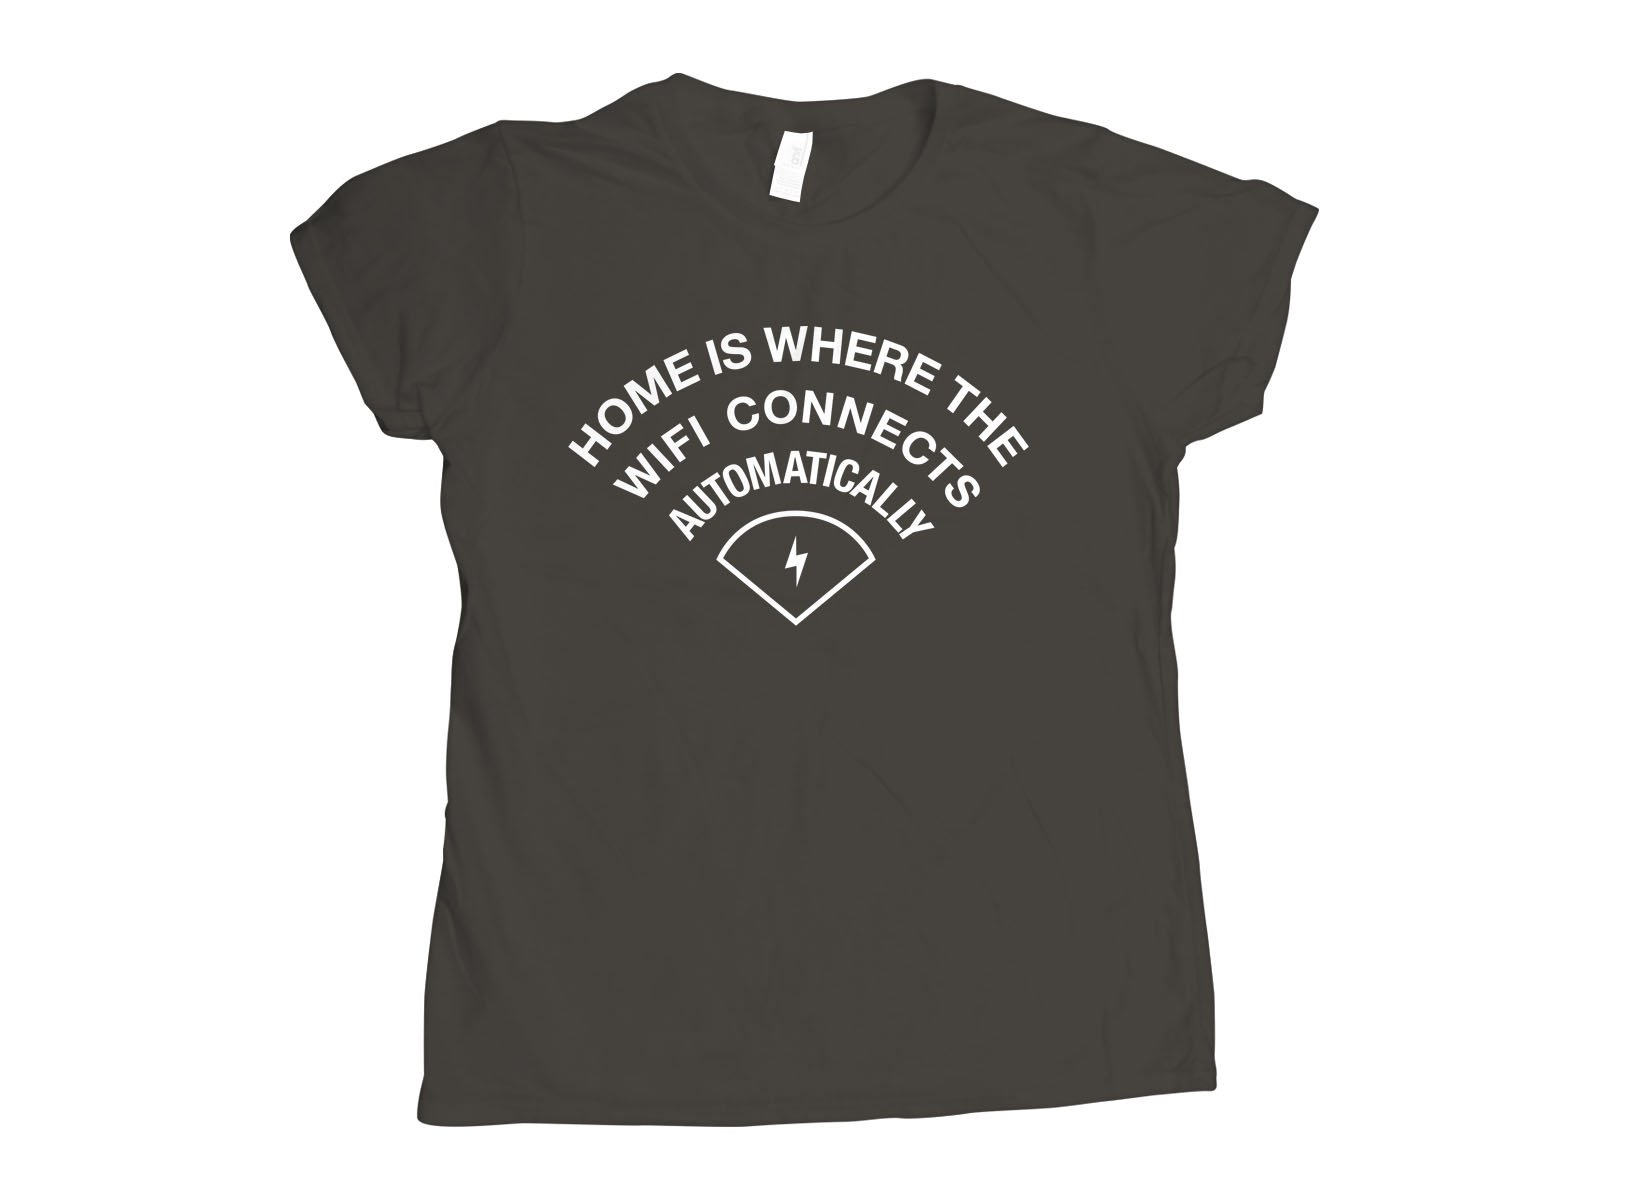 Home Is Where The WiFI Connects Automatically on Womens T-Shirt